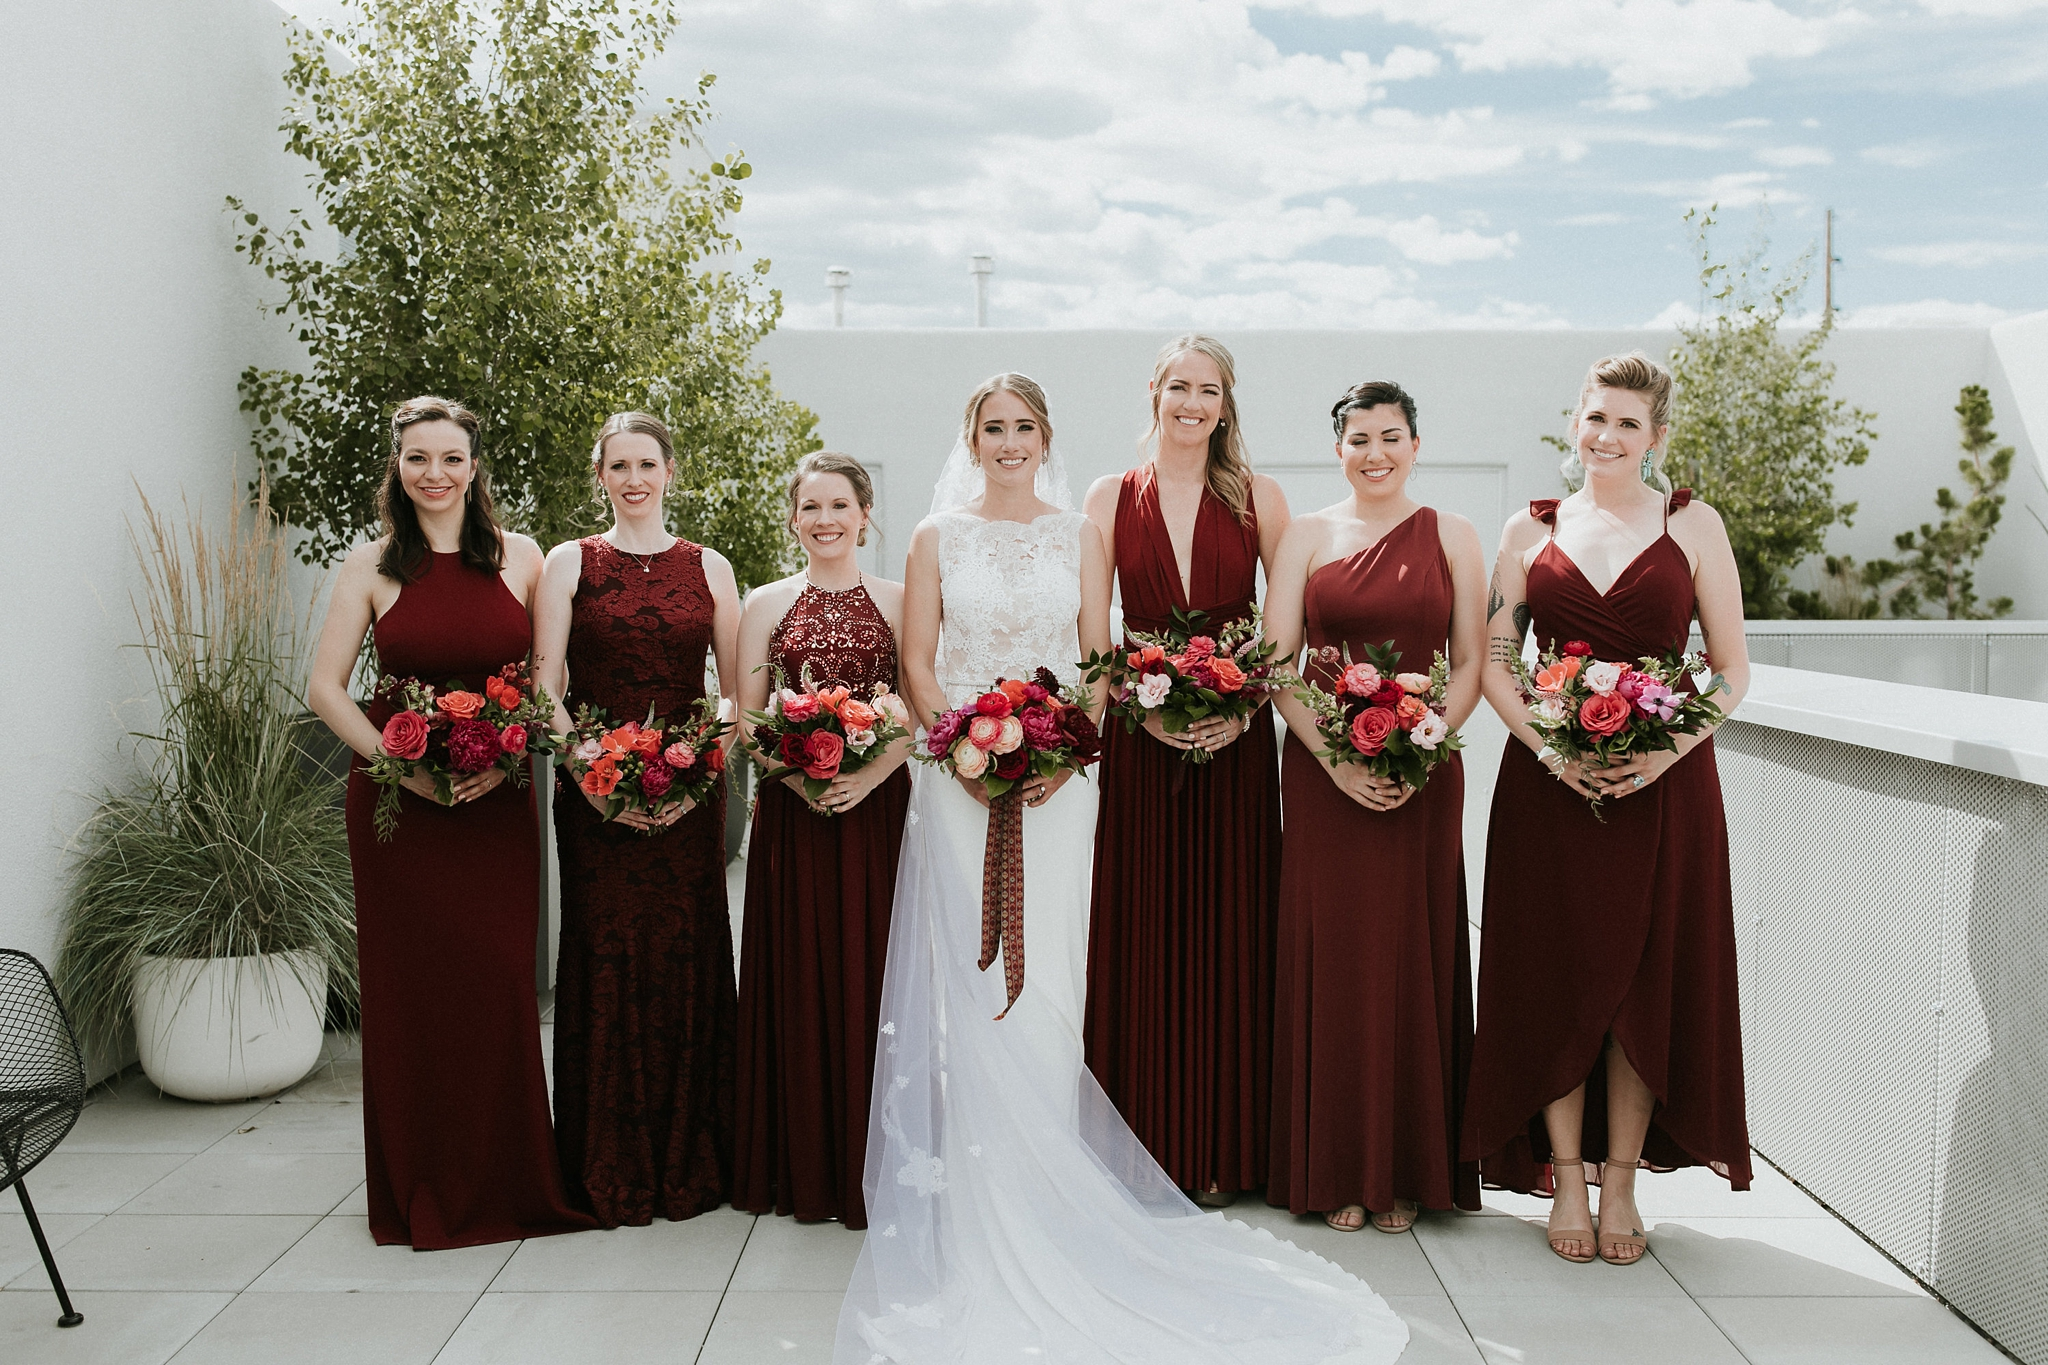 Alicia+lucia+photography+-+albuquerque+wedding+photographer+-+santa+fe+wedding+photography+-+new+mexico+wedding+photographer+-+new+mexico+wedding+-+new+mexico+wedding+-+colorado+wedding+-+bridesmaids+-+bridesmaid+style_0018.jpg